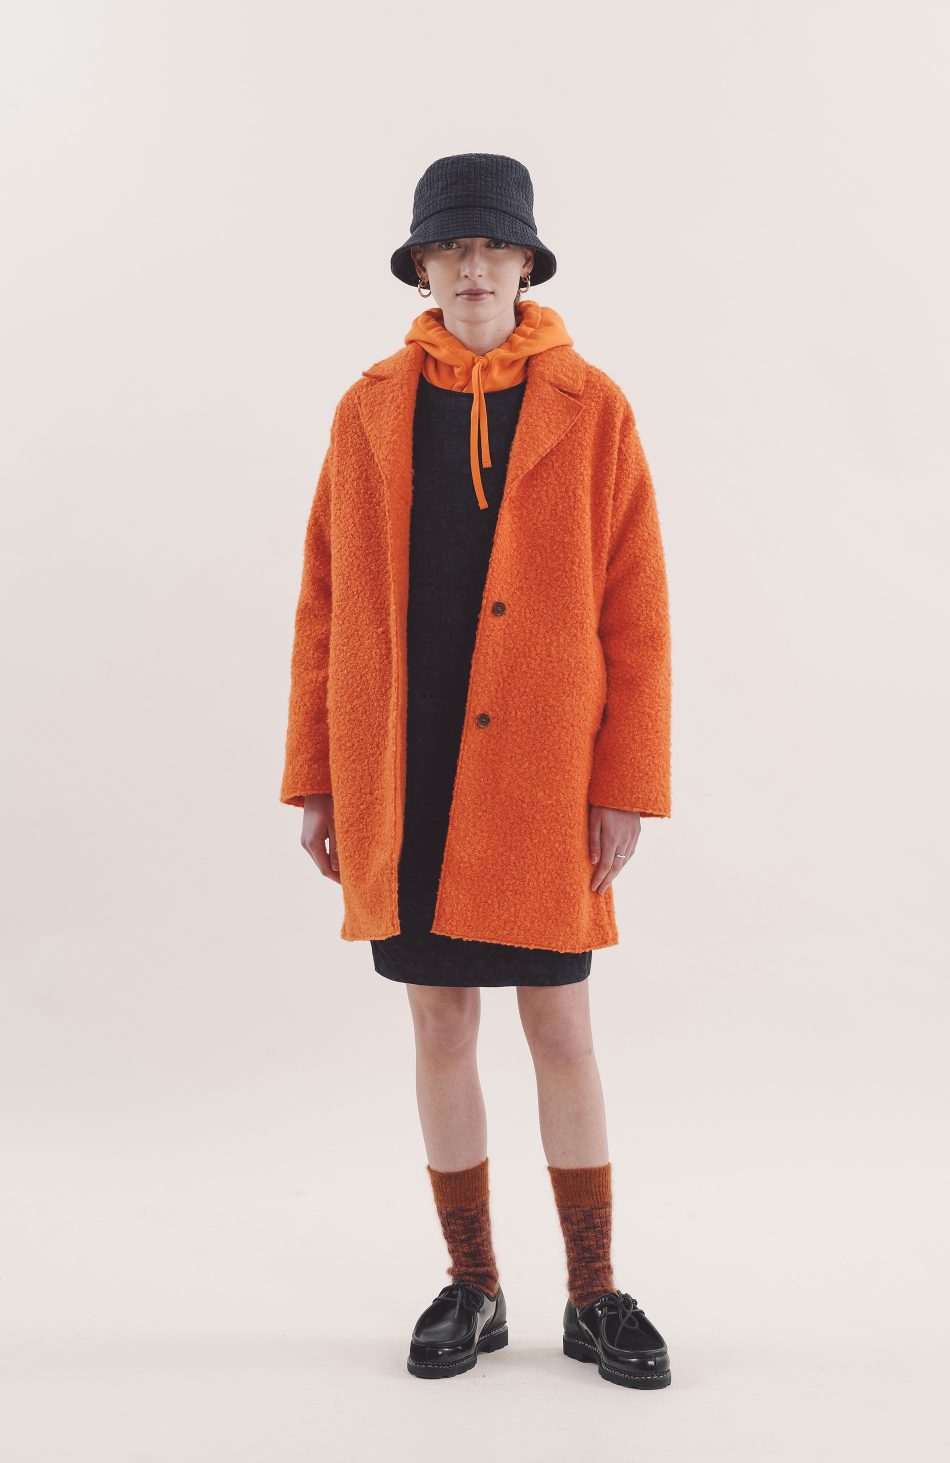 Heroes Coat in Orange